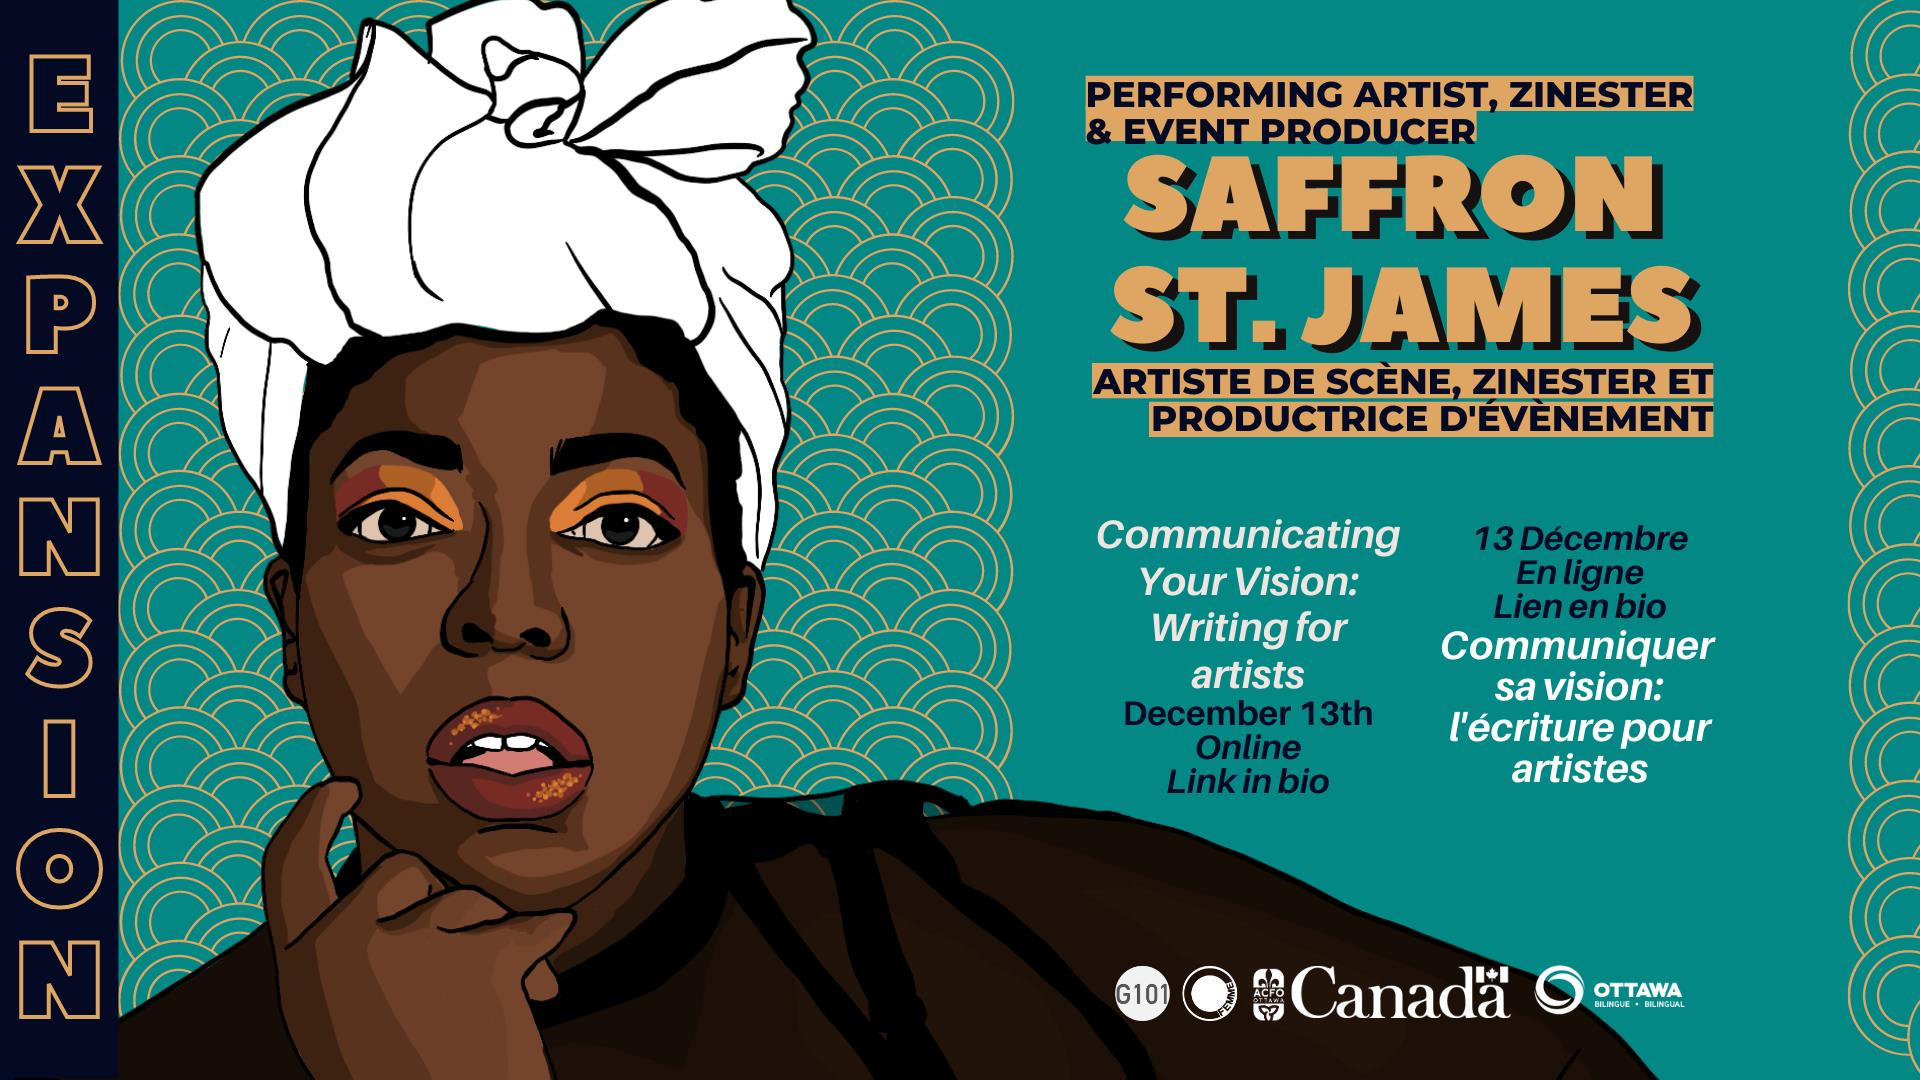 A banner with a teal background featuring a vector illustration of Black performing artist Saffron St.James. They are wearing a white head wrap, orange eye shadow and a black turtleneck shirt and are resting their chin on their hand. The text in the banner gives the details of the workshop in English and French.